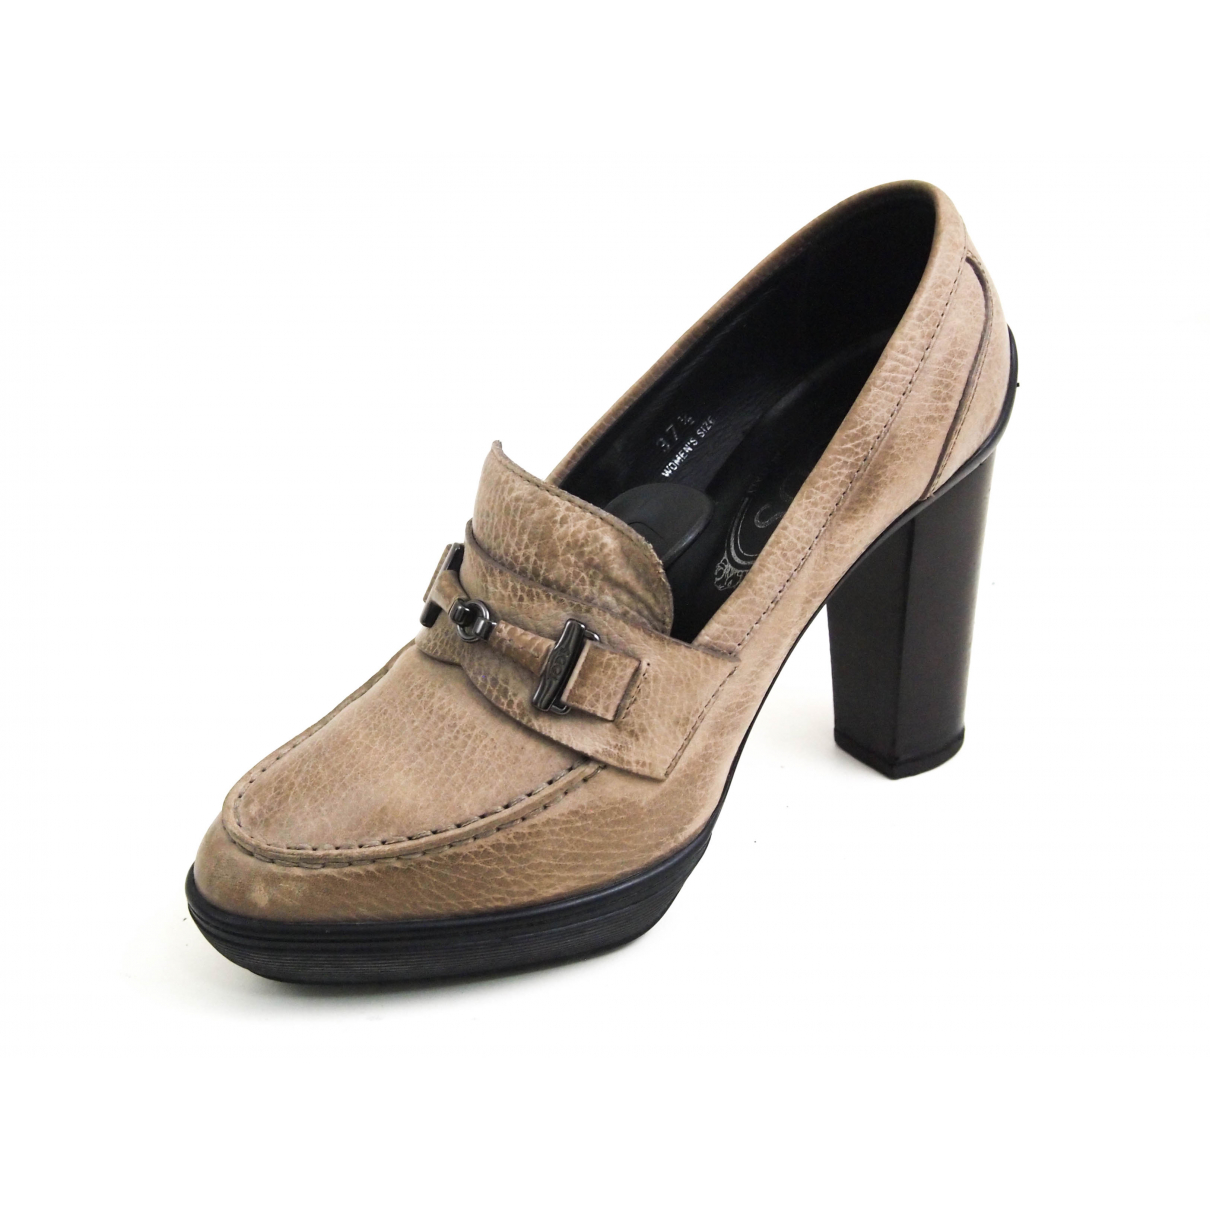 Tod's N Beige Leather Heels for Women 37.5 EU